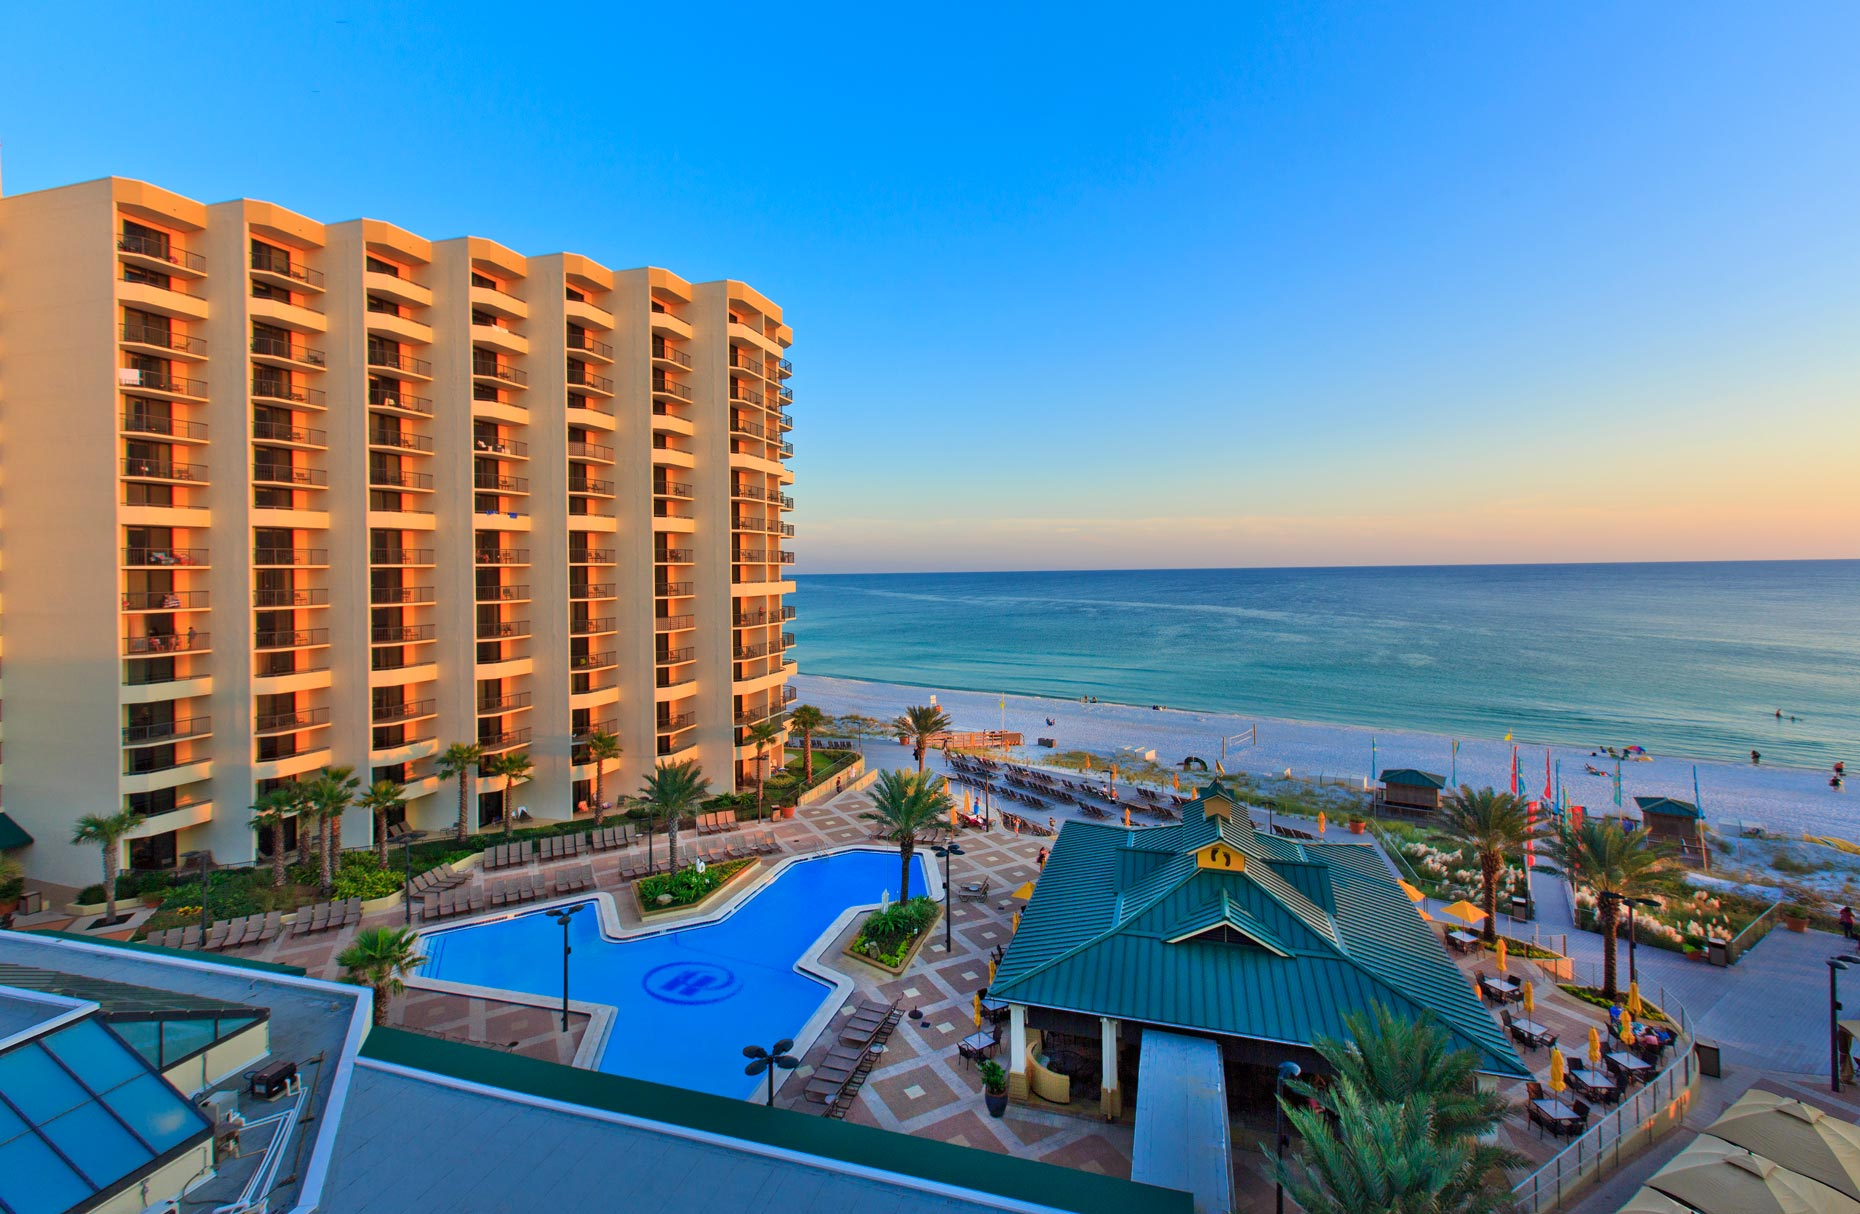 Hotel & Resort Photography | Hilton Sandestin Florida Hotel Golf Resort & Spa